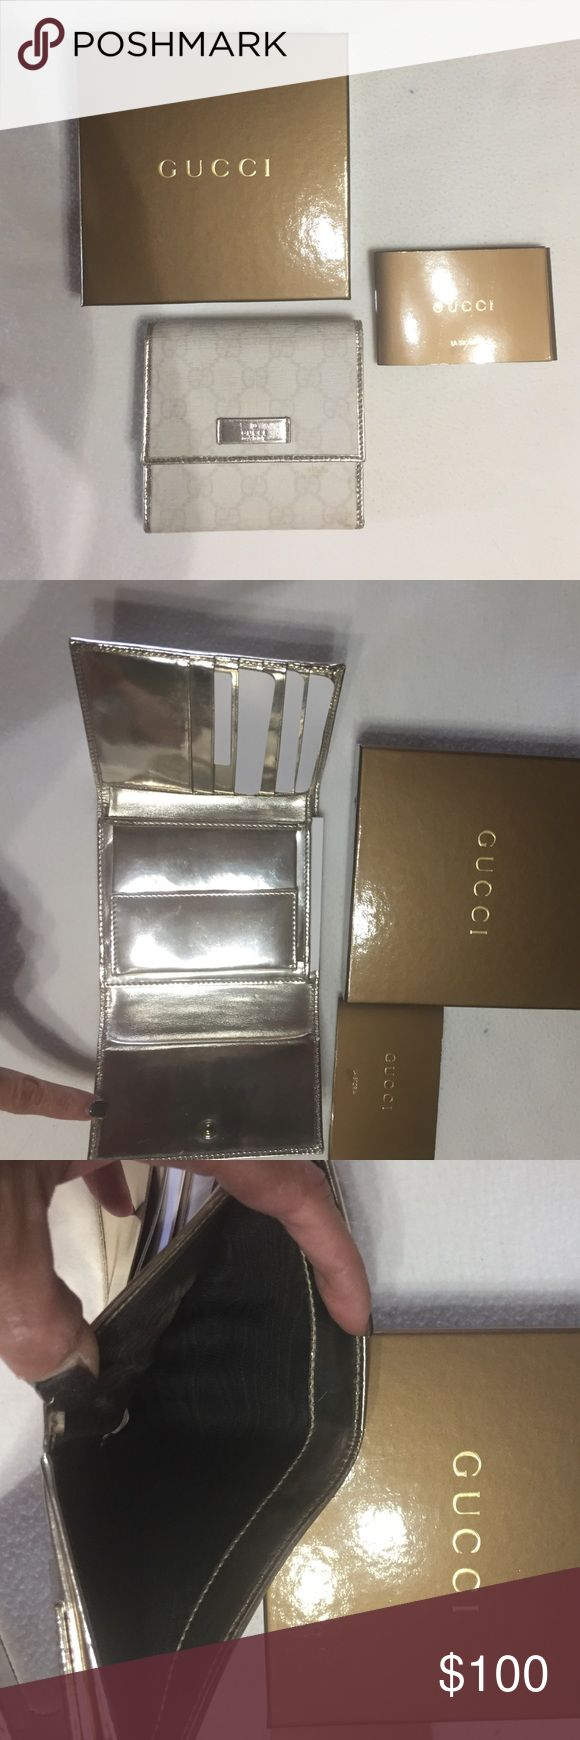 Authentic Gucci Wallet Authentic Gucci Wallet in great condition.  Used a handful of times.  Matches the bag for sale.  Will bundle for sale of both items. Gucci Bags Wallets